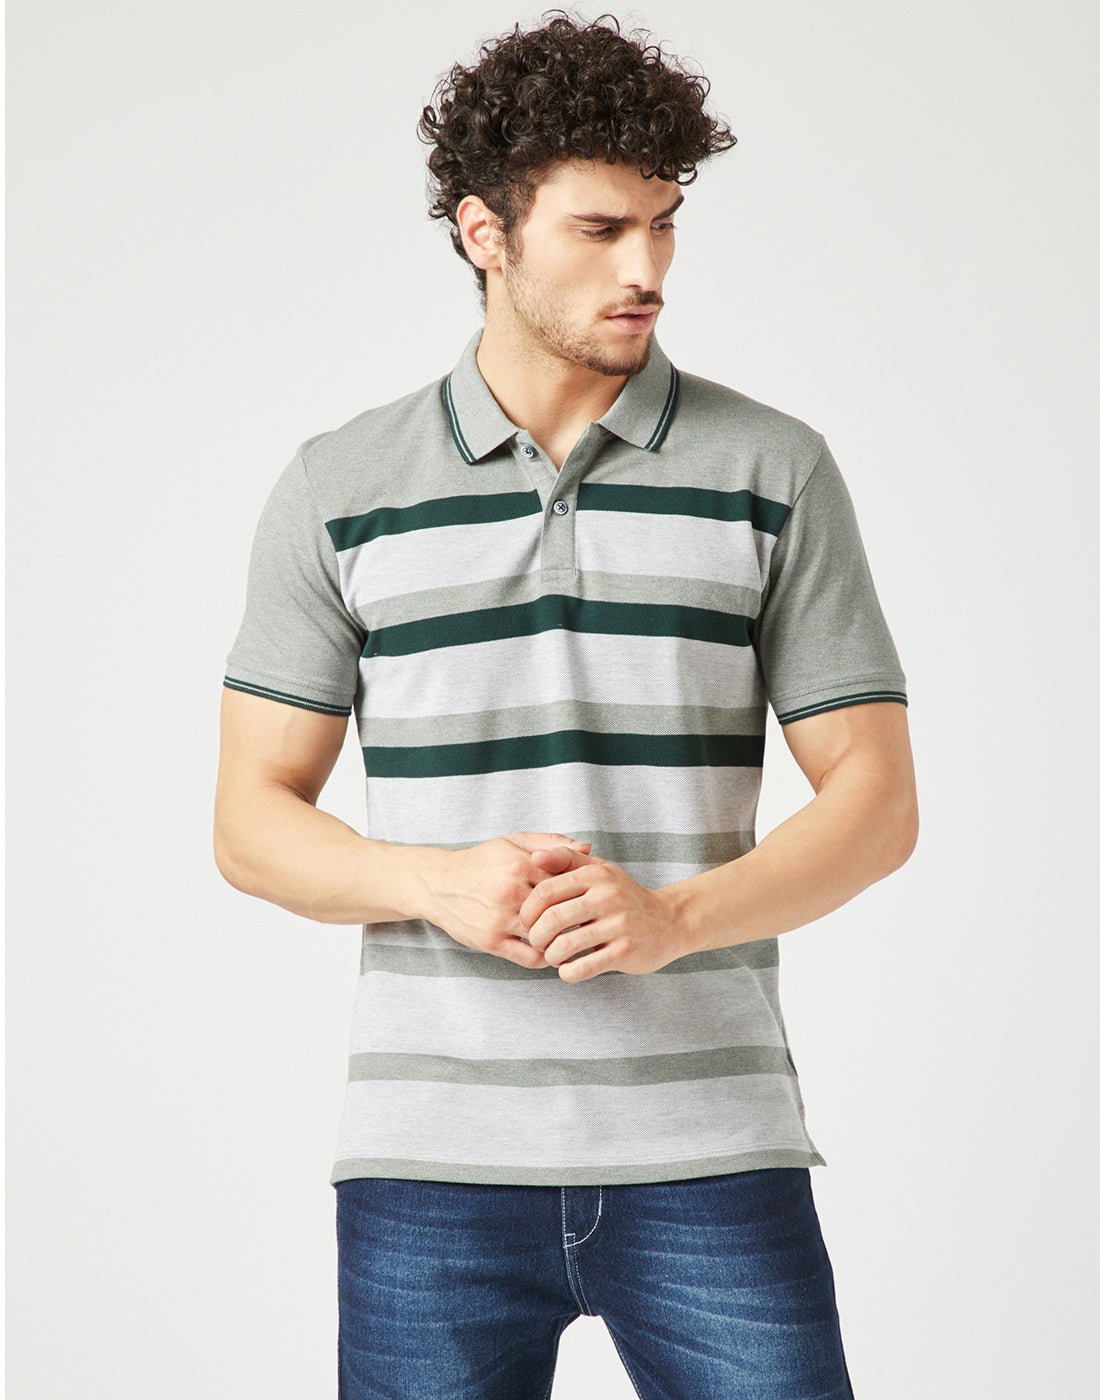 Octave Men Sage Melange Striped Polo Tshirt